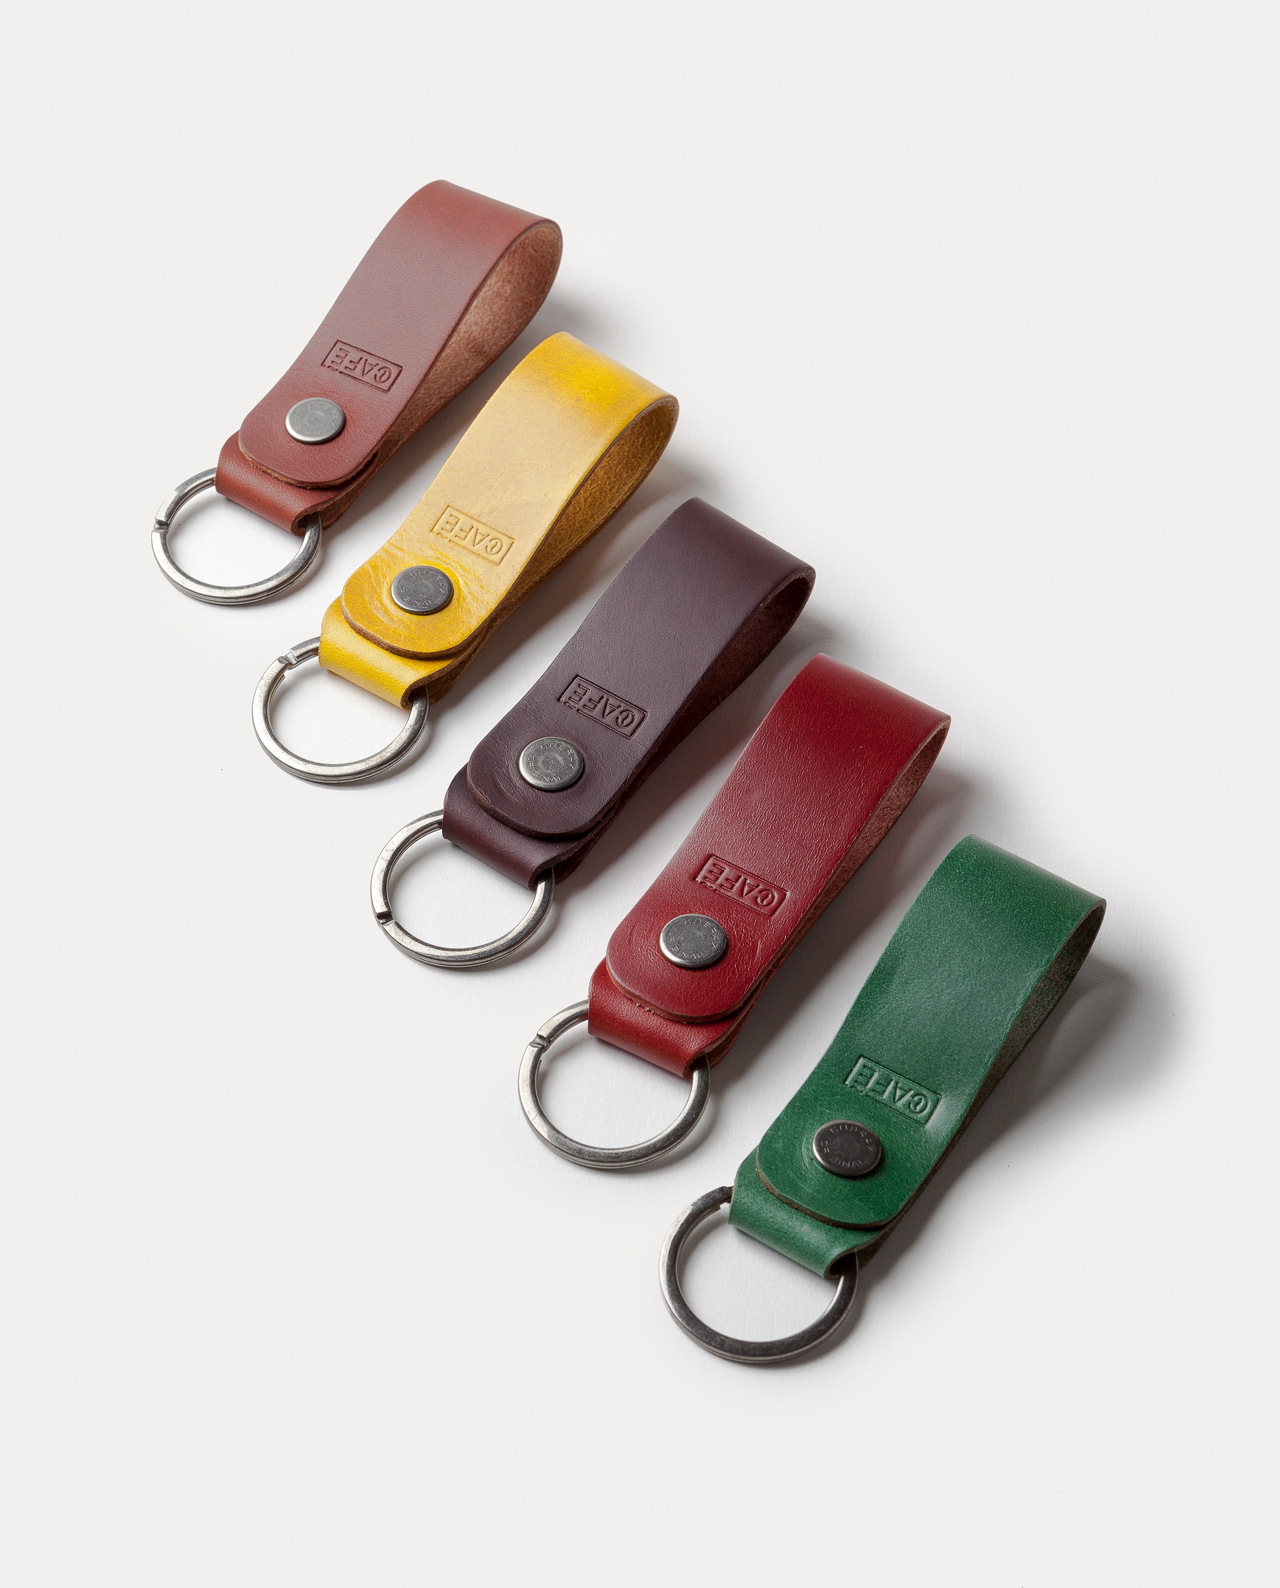 leather keychain handcrafted in Spain